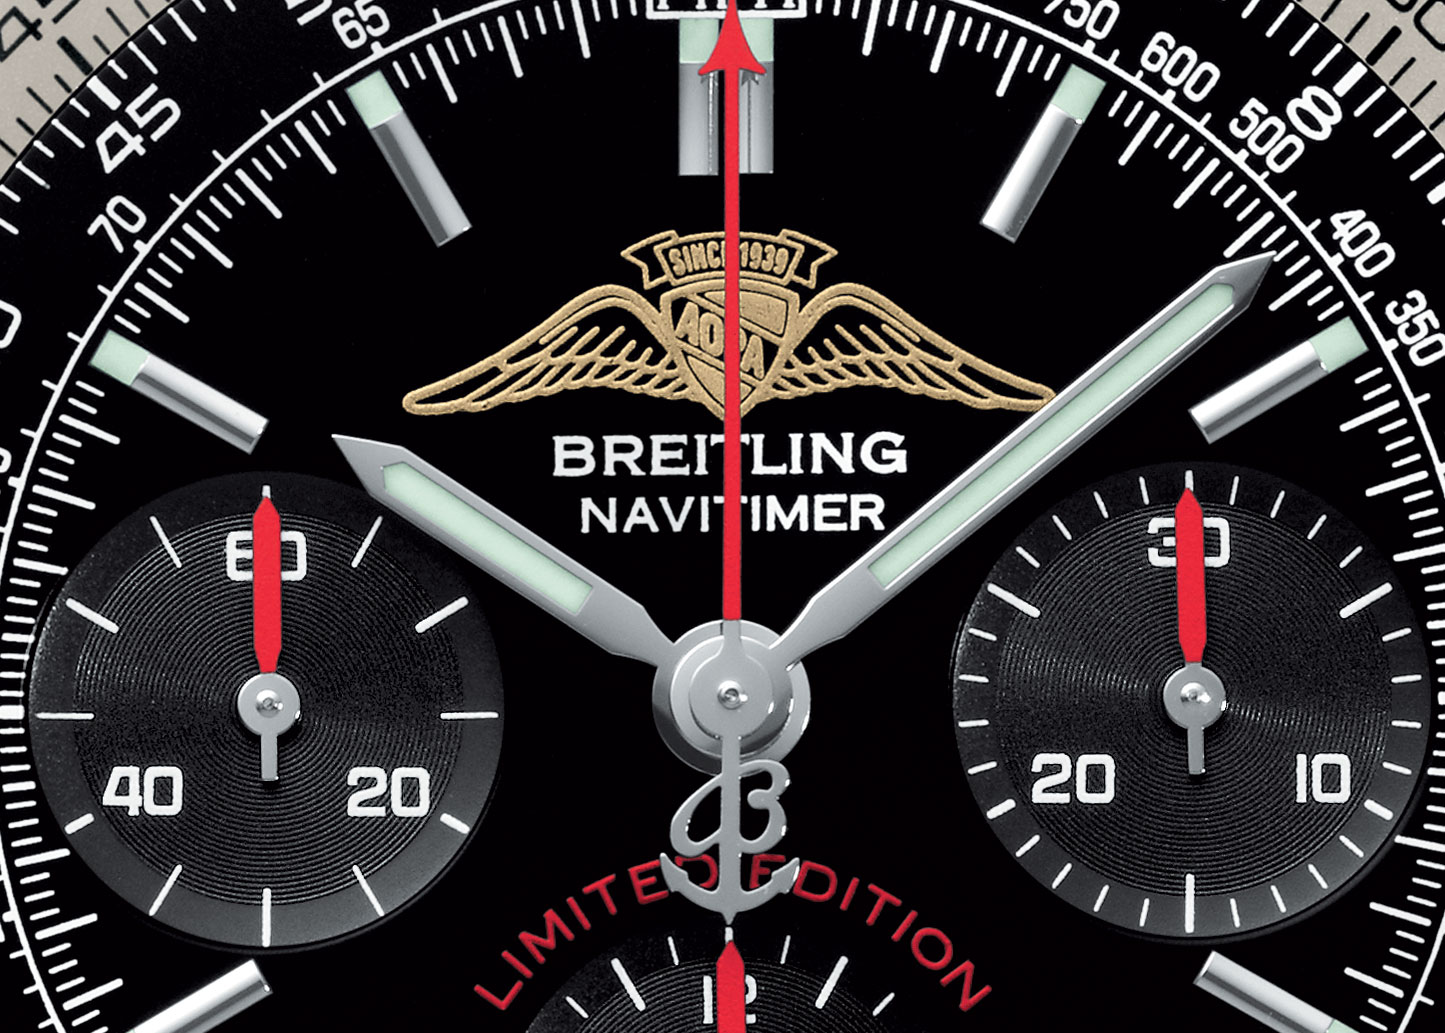 breitling aviator watches 6kgq  Breitling Navitimer AOPA limited edition watch dial